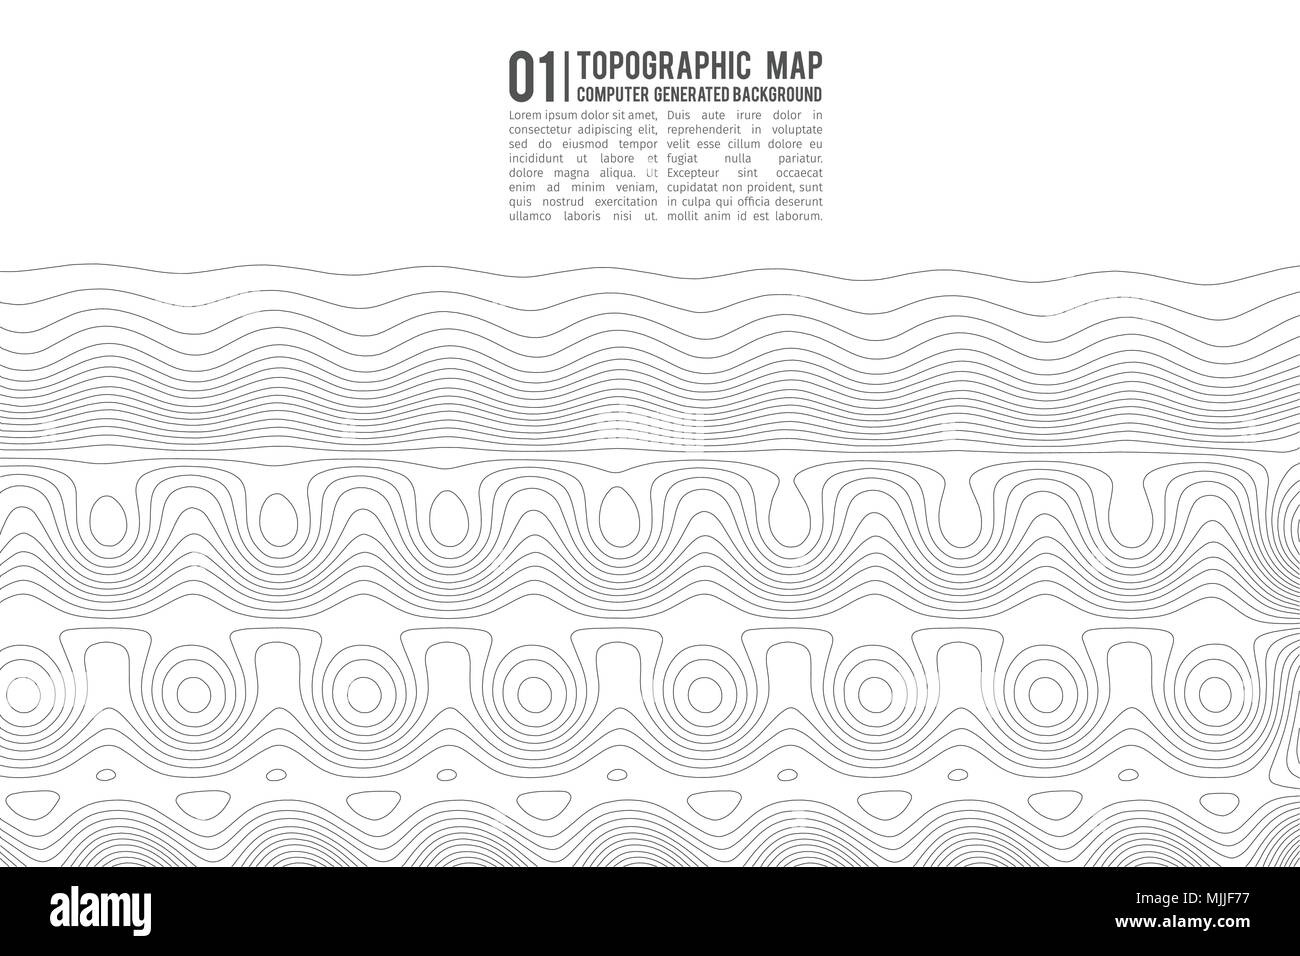 Topographic map contour background. Topo map with elevation. Contour map vector. Geographic World Topography map grid abstract vector illustration . - Stock Image